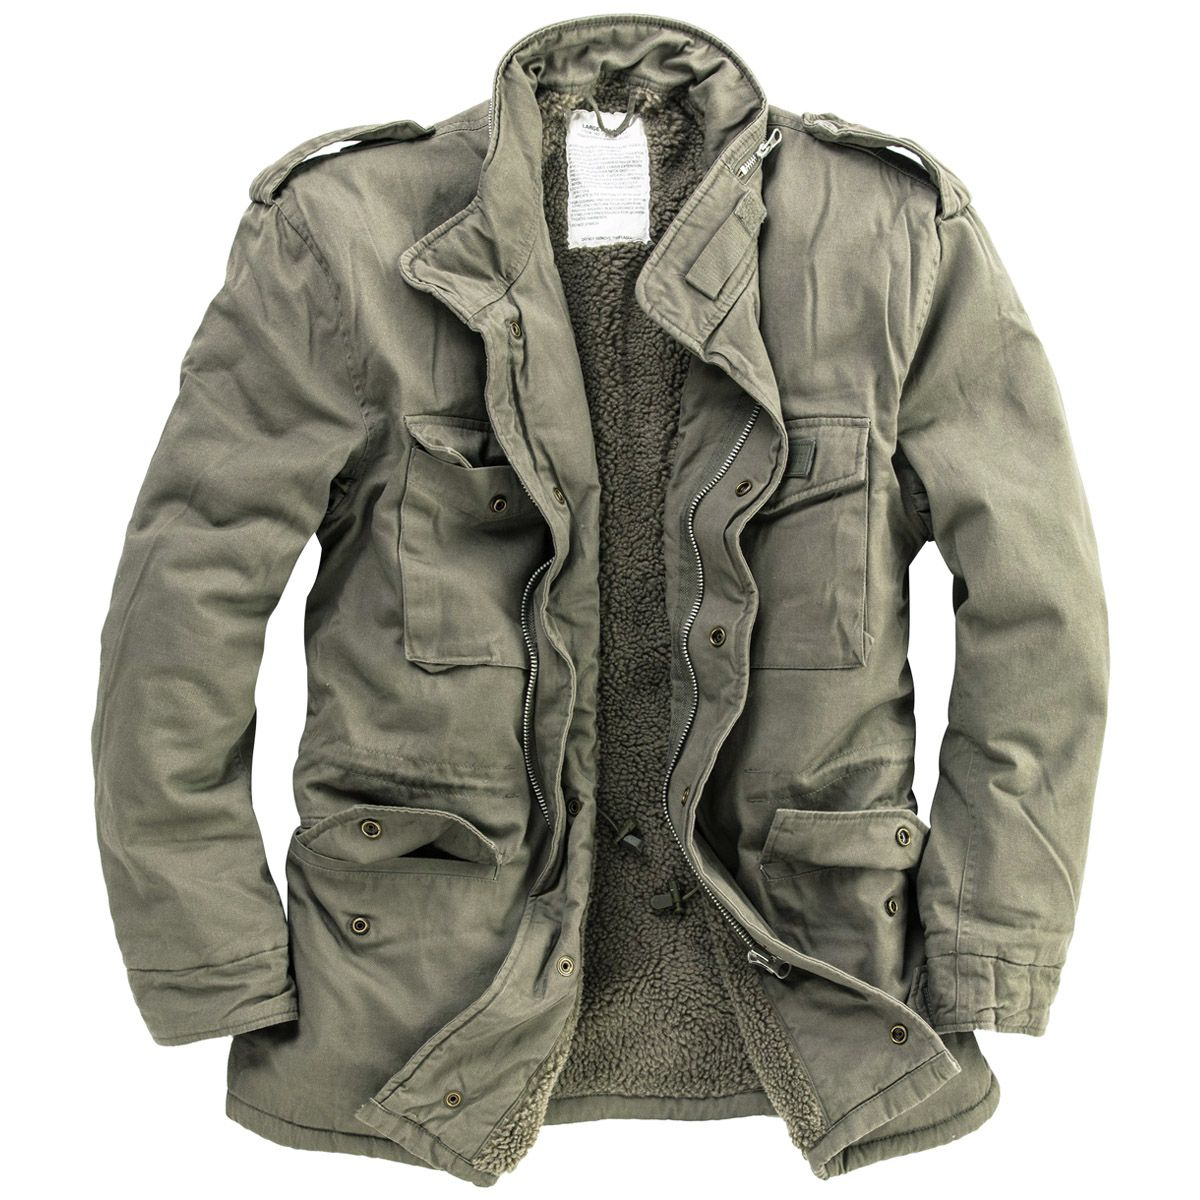 f1c42e73a52 Surplus-Paratrooper-Winter-Mens-Jacket-M65-Army-Military-Field-Coat-Olive- Washed